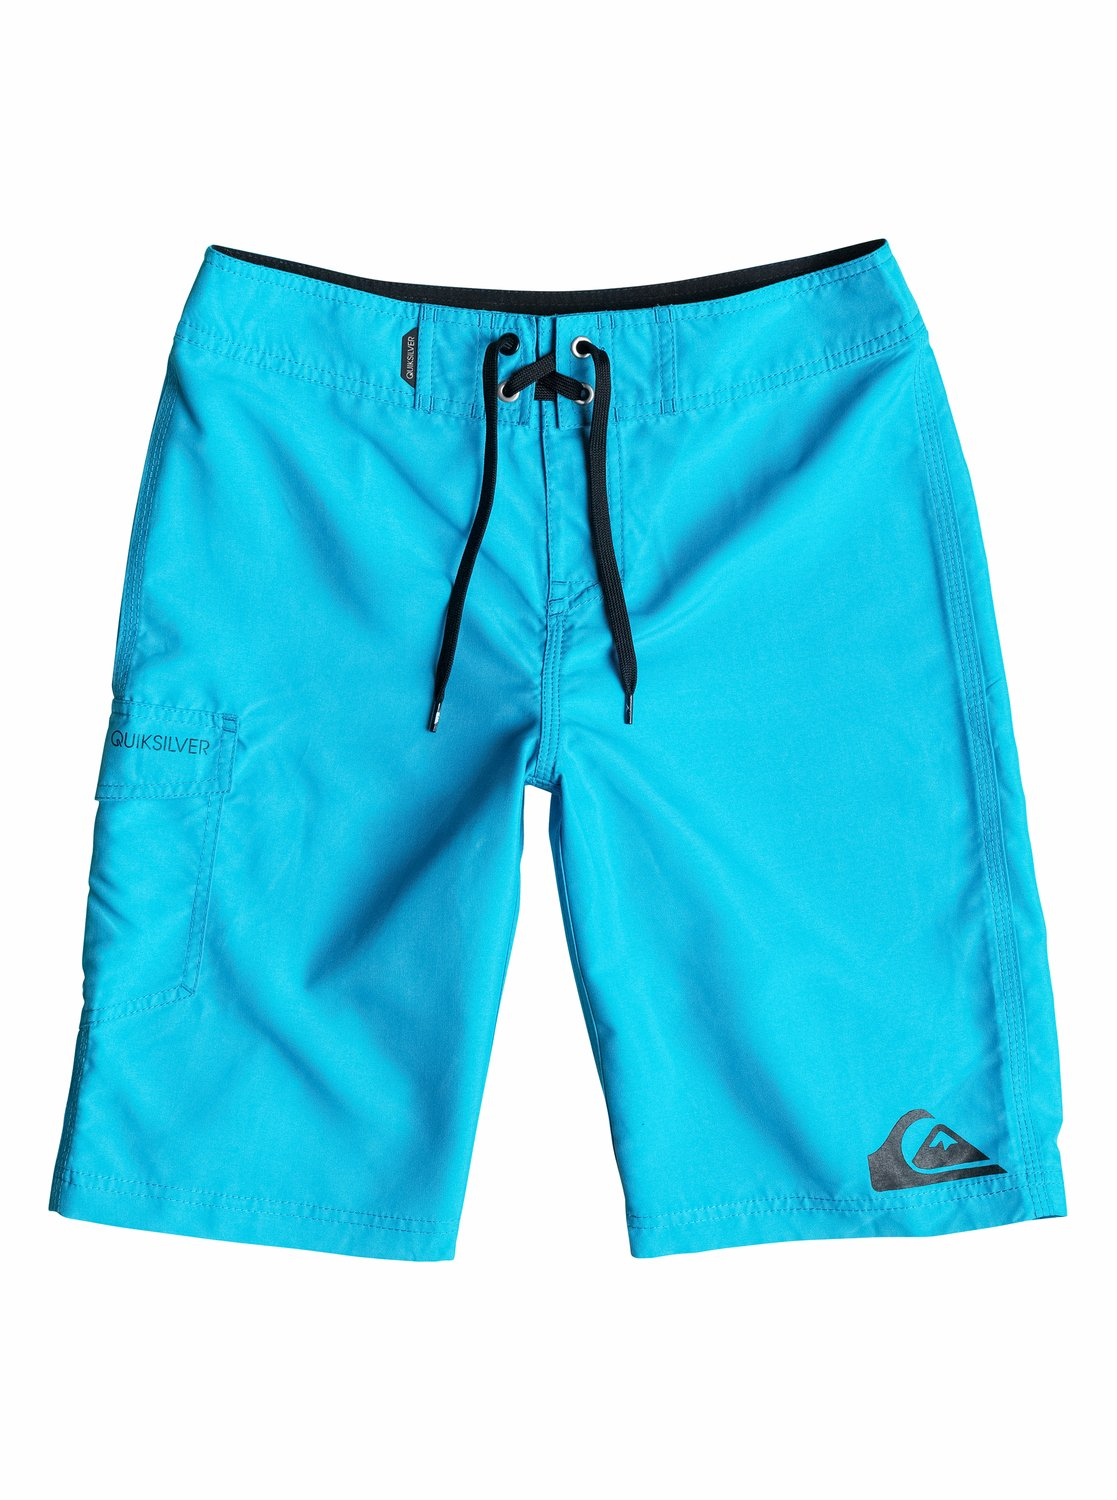 Send Them Swimming in Comfortable and Stylish Boys' Board Shorts. Boys' board shorts are essential swimwear usually made of durable, flexible, and quick-drying fabrics. They're available in different cuts and sizes as well as colors and patterns that are appealing to young boys.